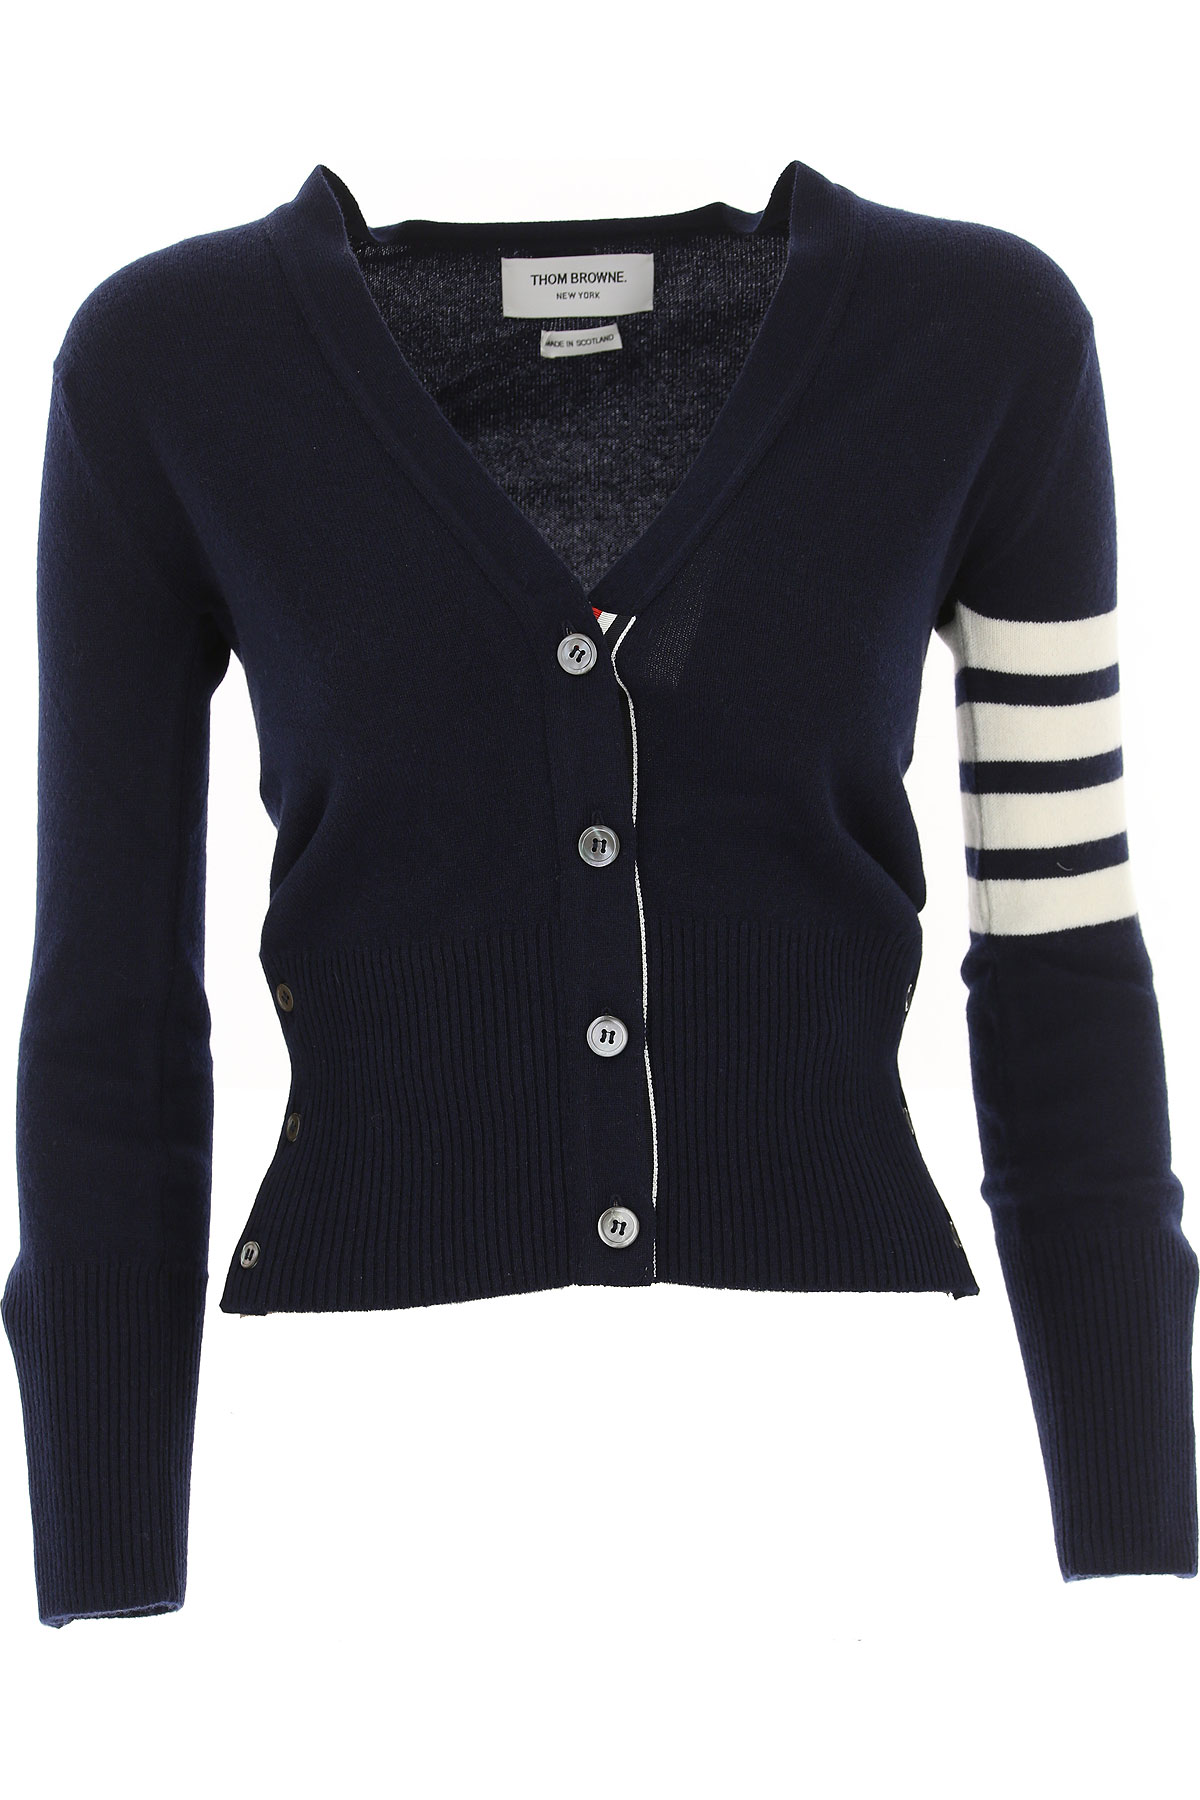 Image of THOM BROWNE Sweater for Women Jumper, navy, Cashmere, 2017, 2 8